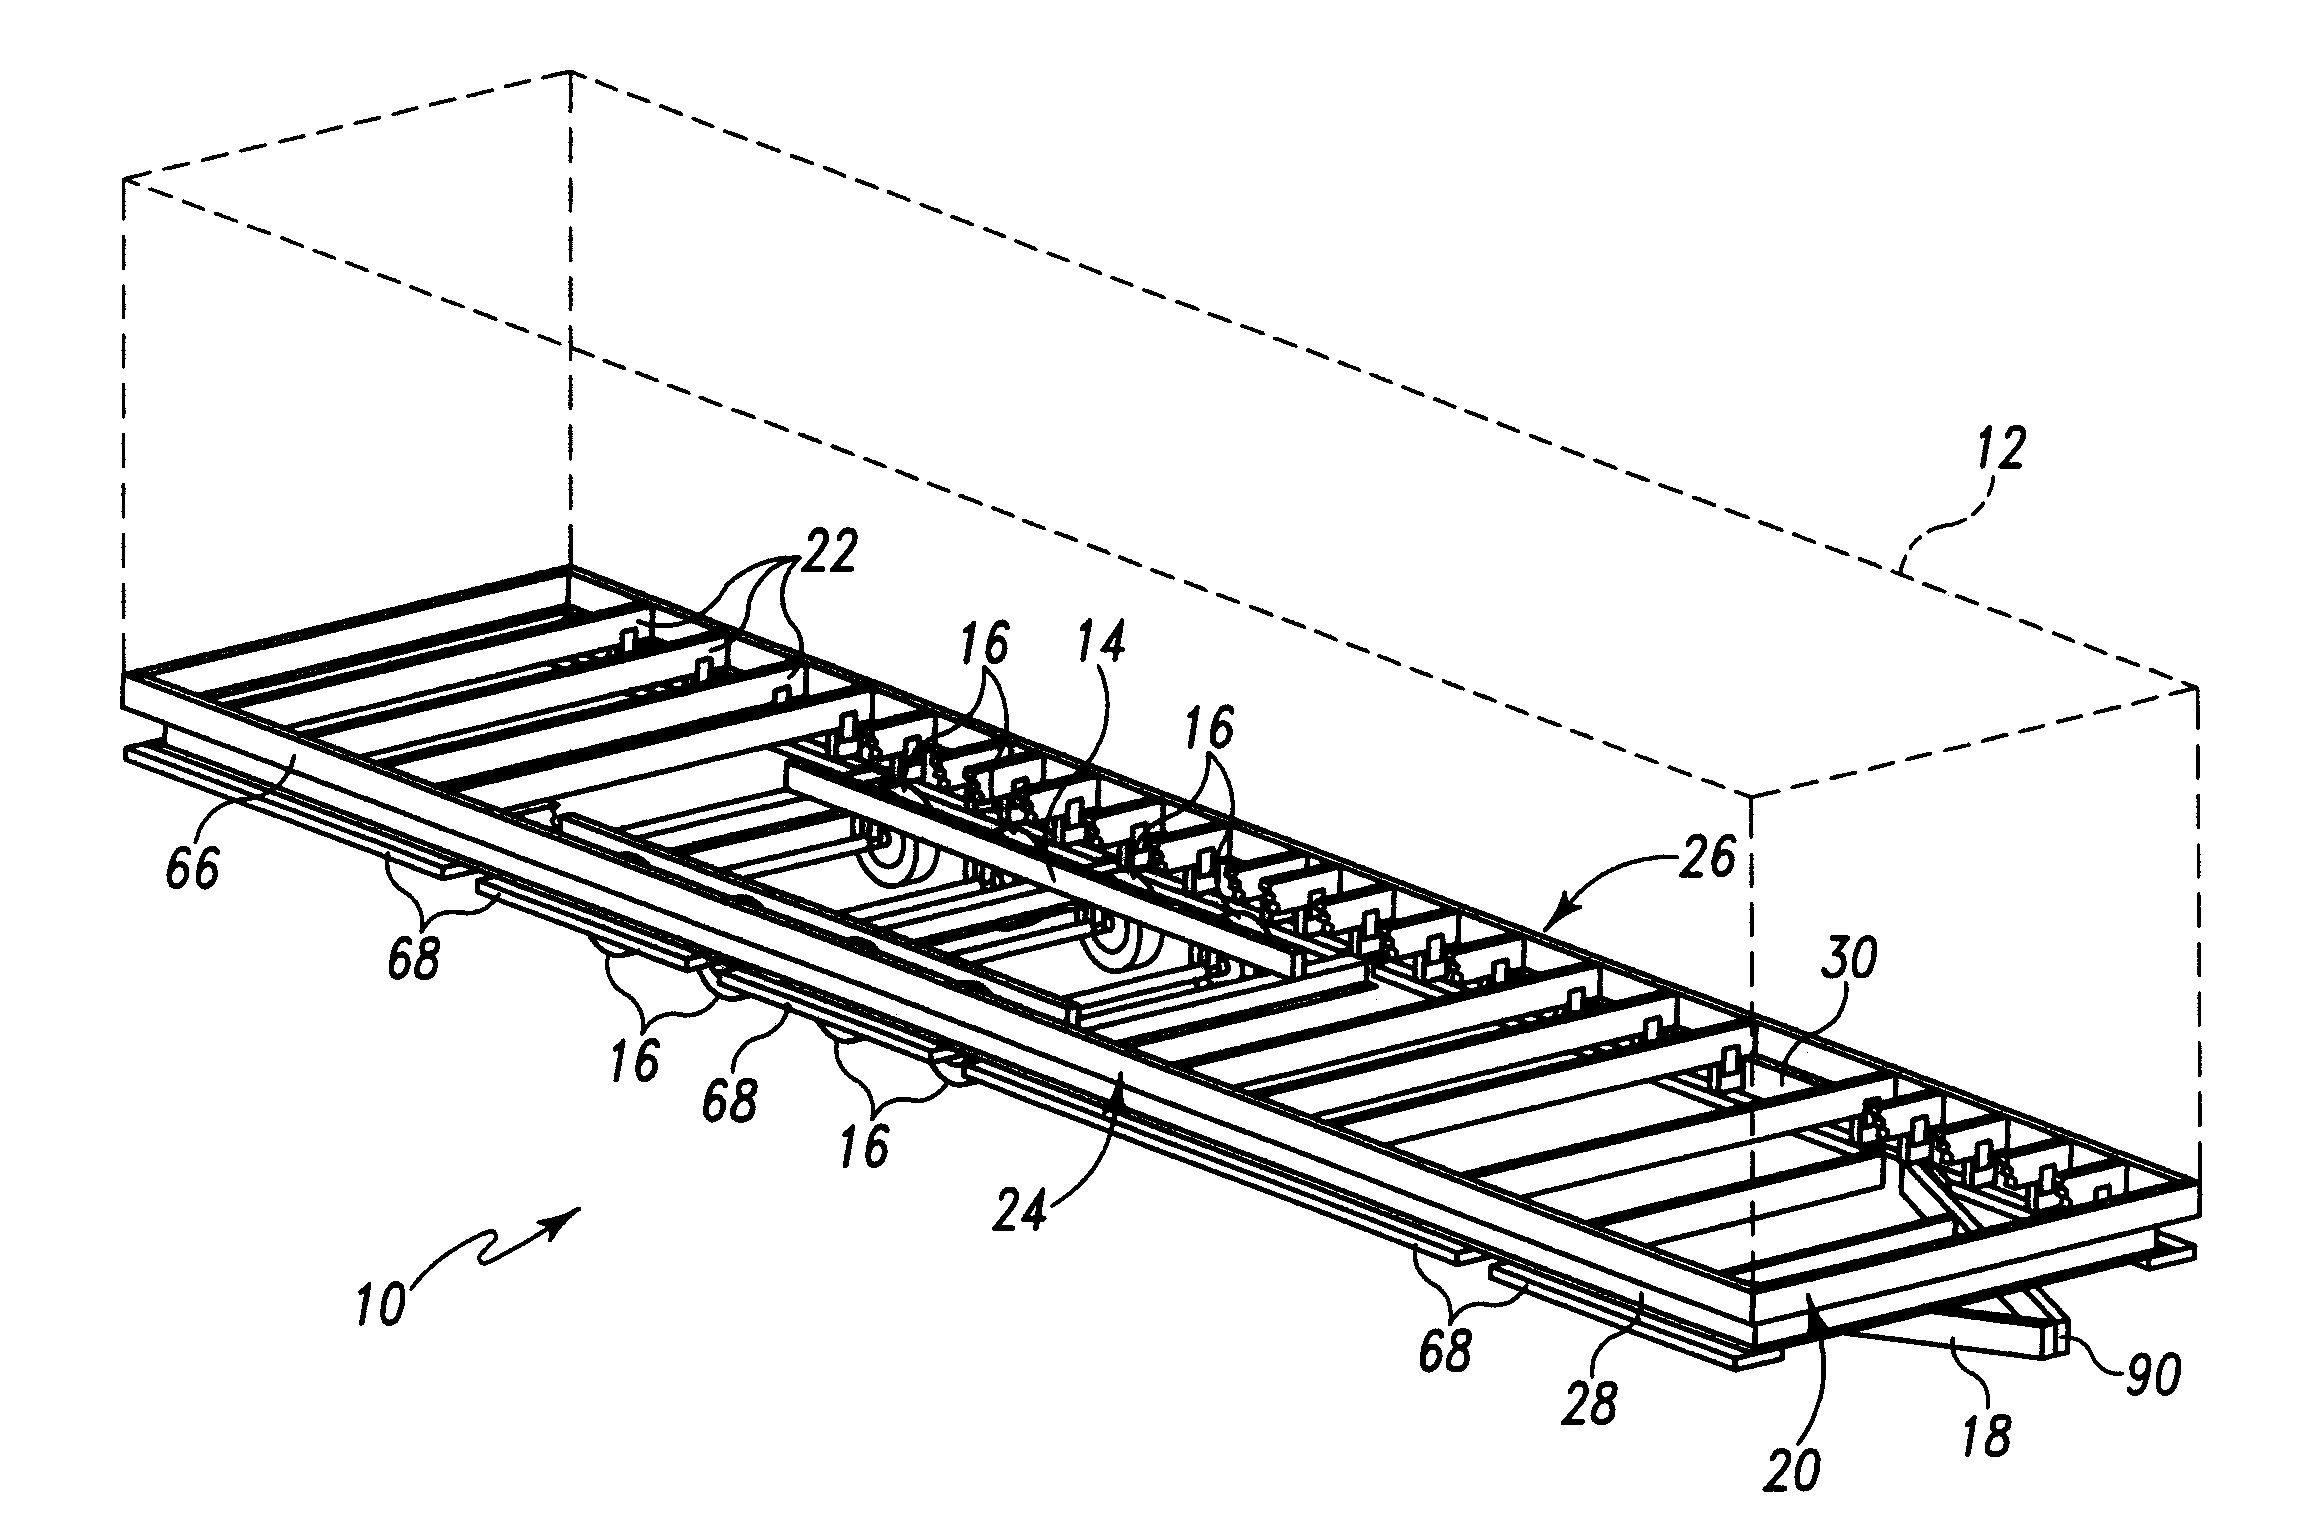 patent drawing - Mobile Home Frame